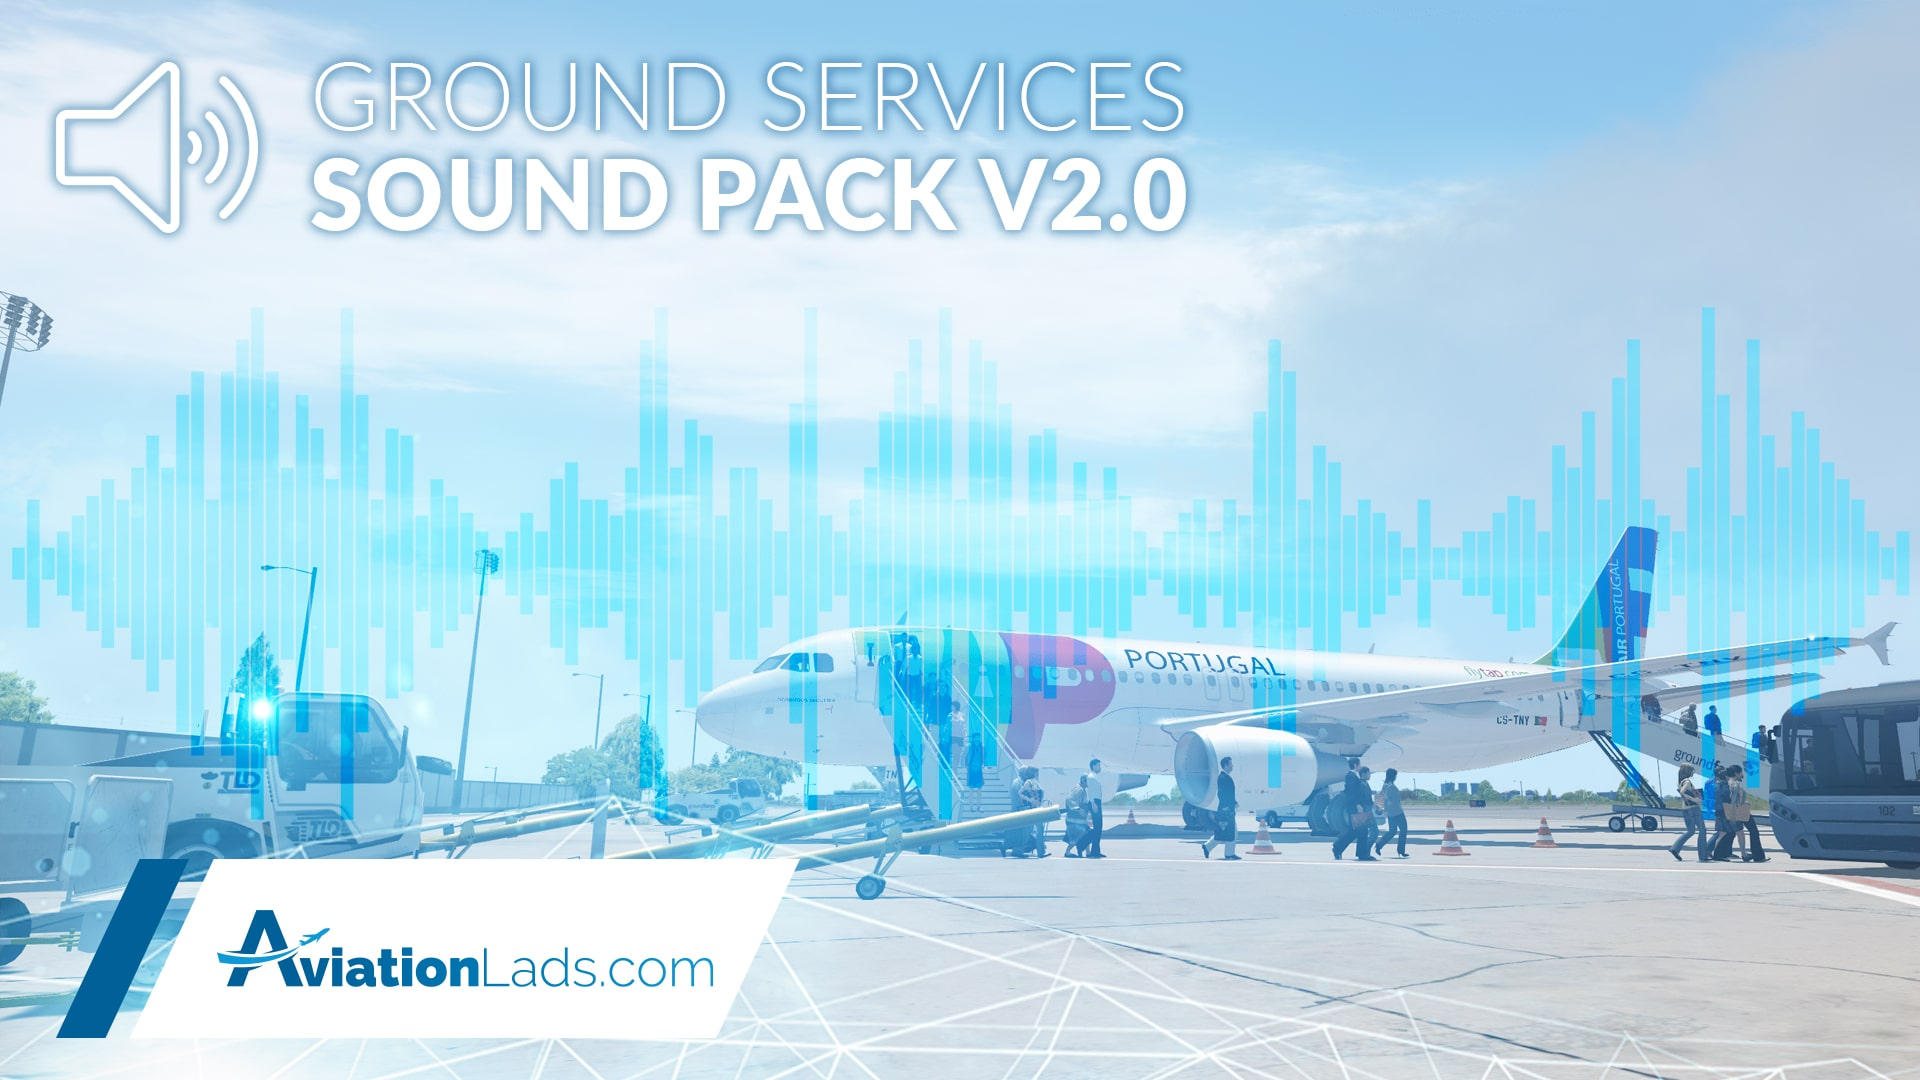 Ground Services Sound Pack V2